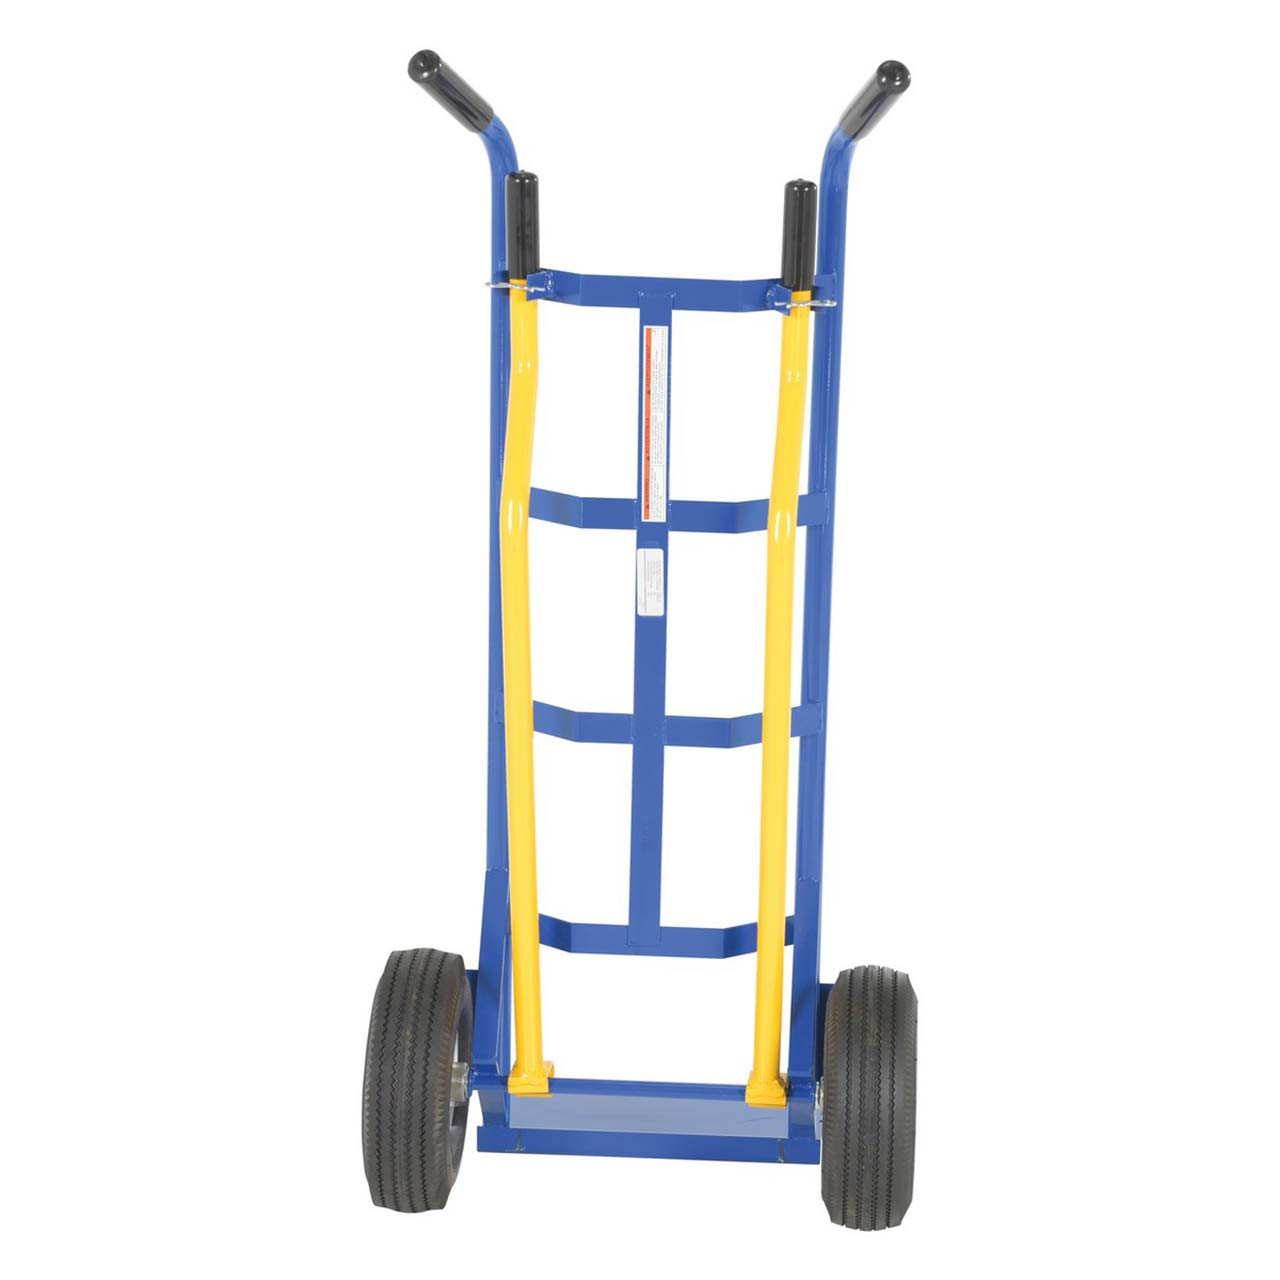 Back view of the 4 handle stair hand truck